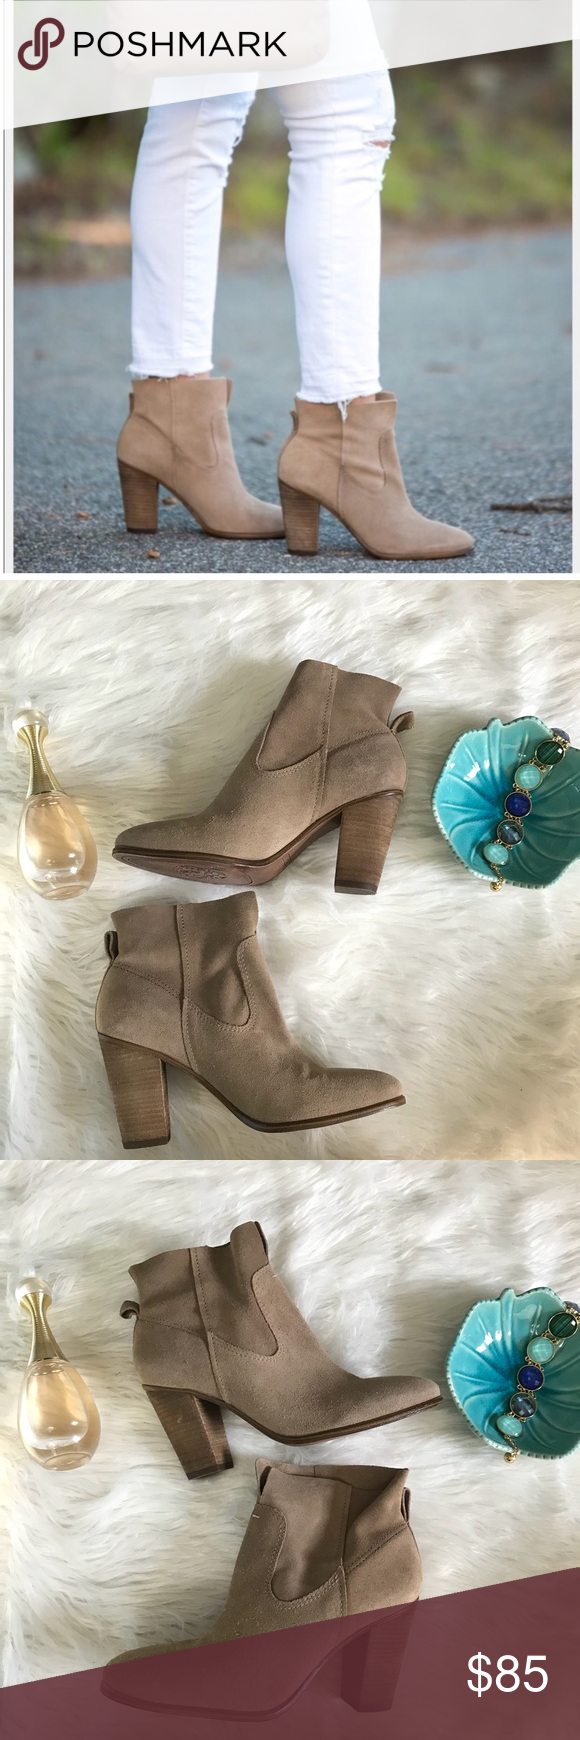 """c3f7b0c1094 Vince Camuto Feina Suede Bootie NWOT 👗 new without box 👗 from a smoke  free and pet friendly home 👗 next day shipping 📫 👗 approx 3"""" heel Vince  Camuto ..."""